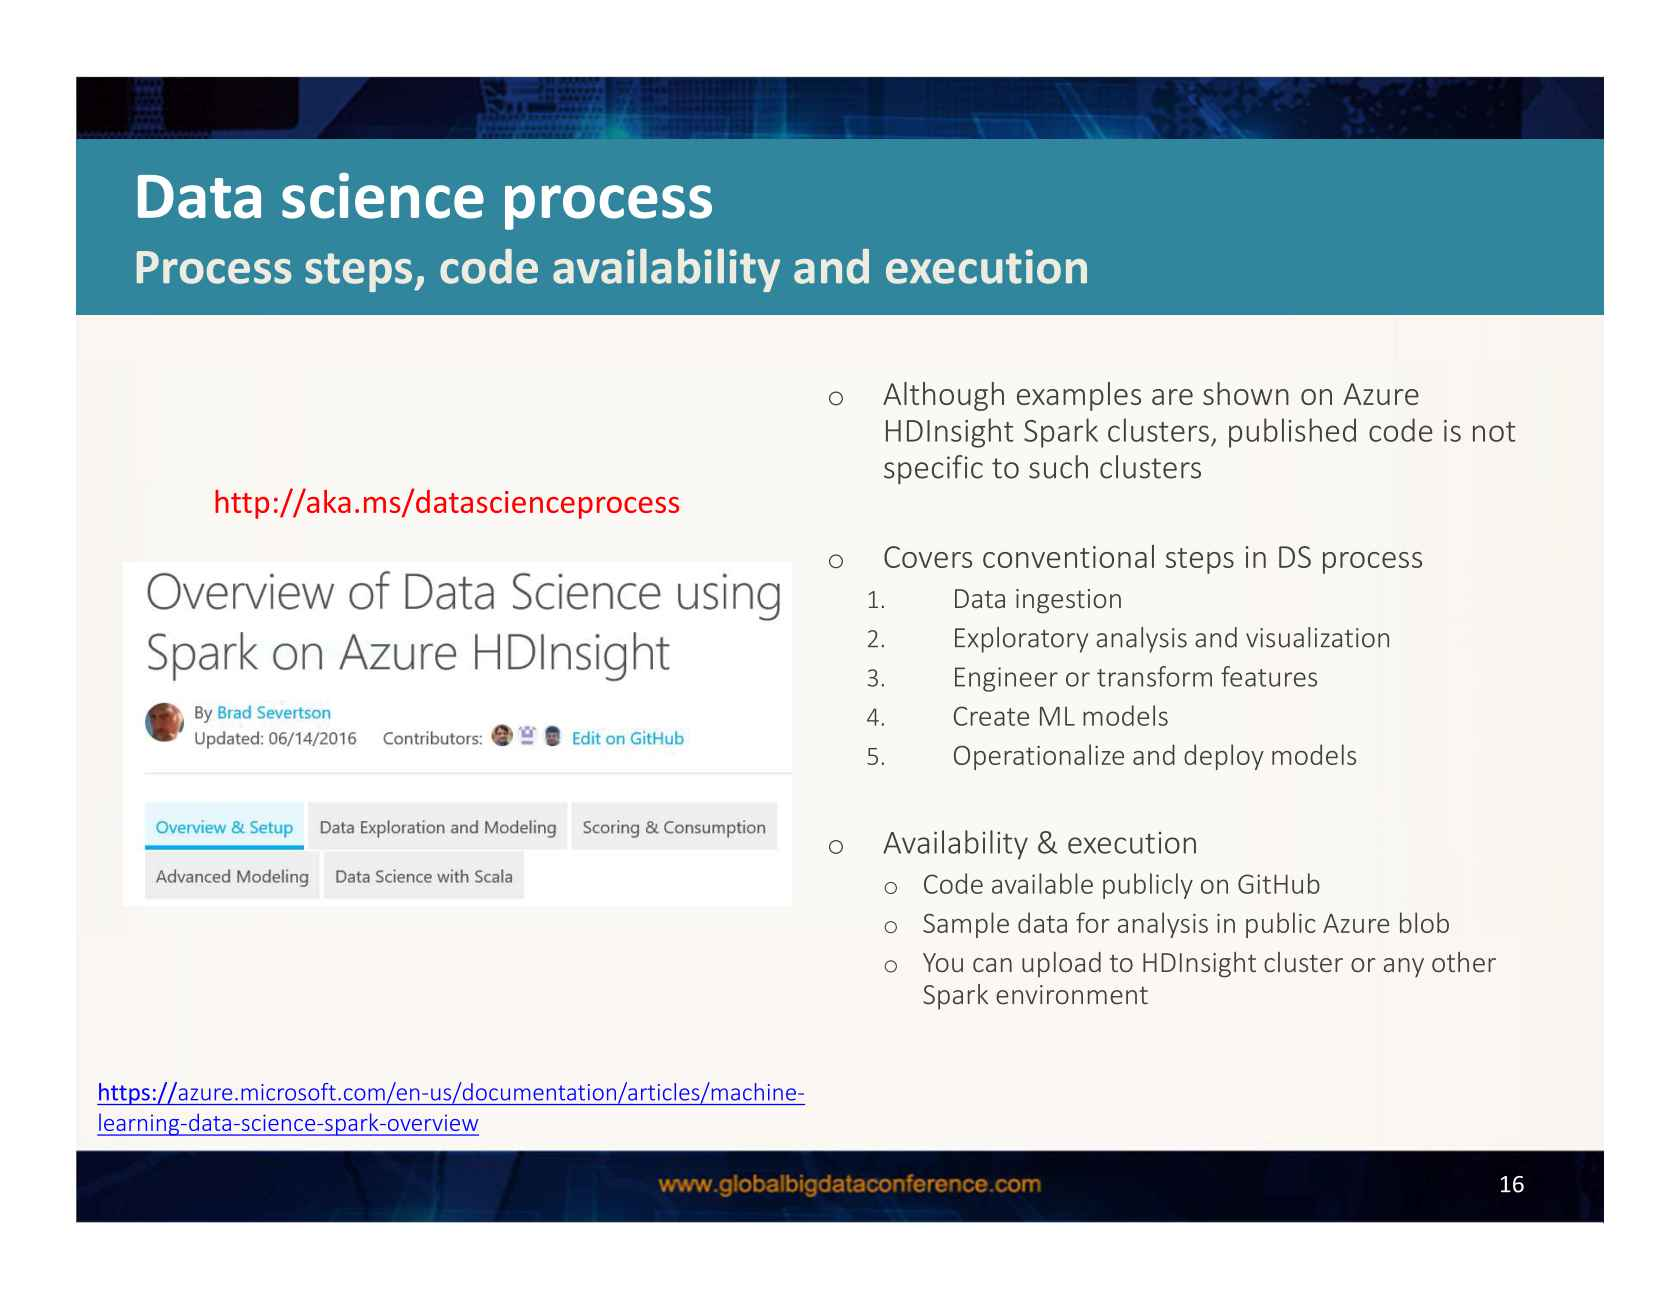 Machine Learning and End-to-End Data Analysis Processes in Spark